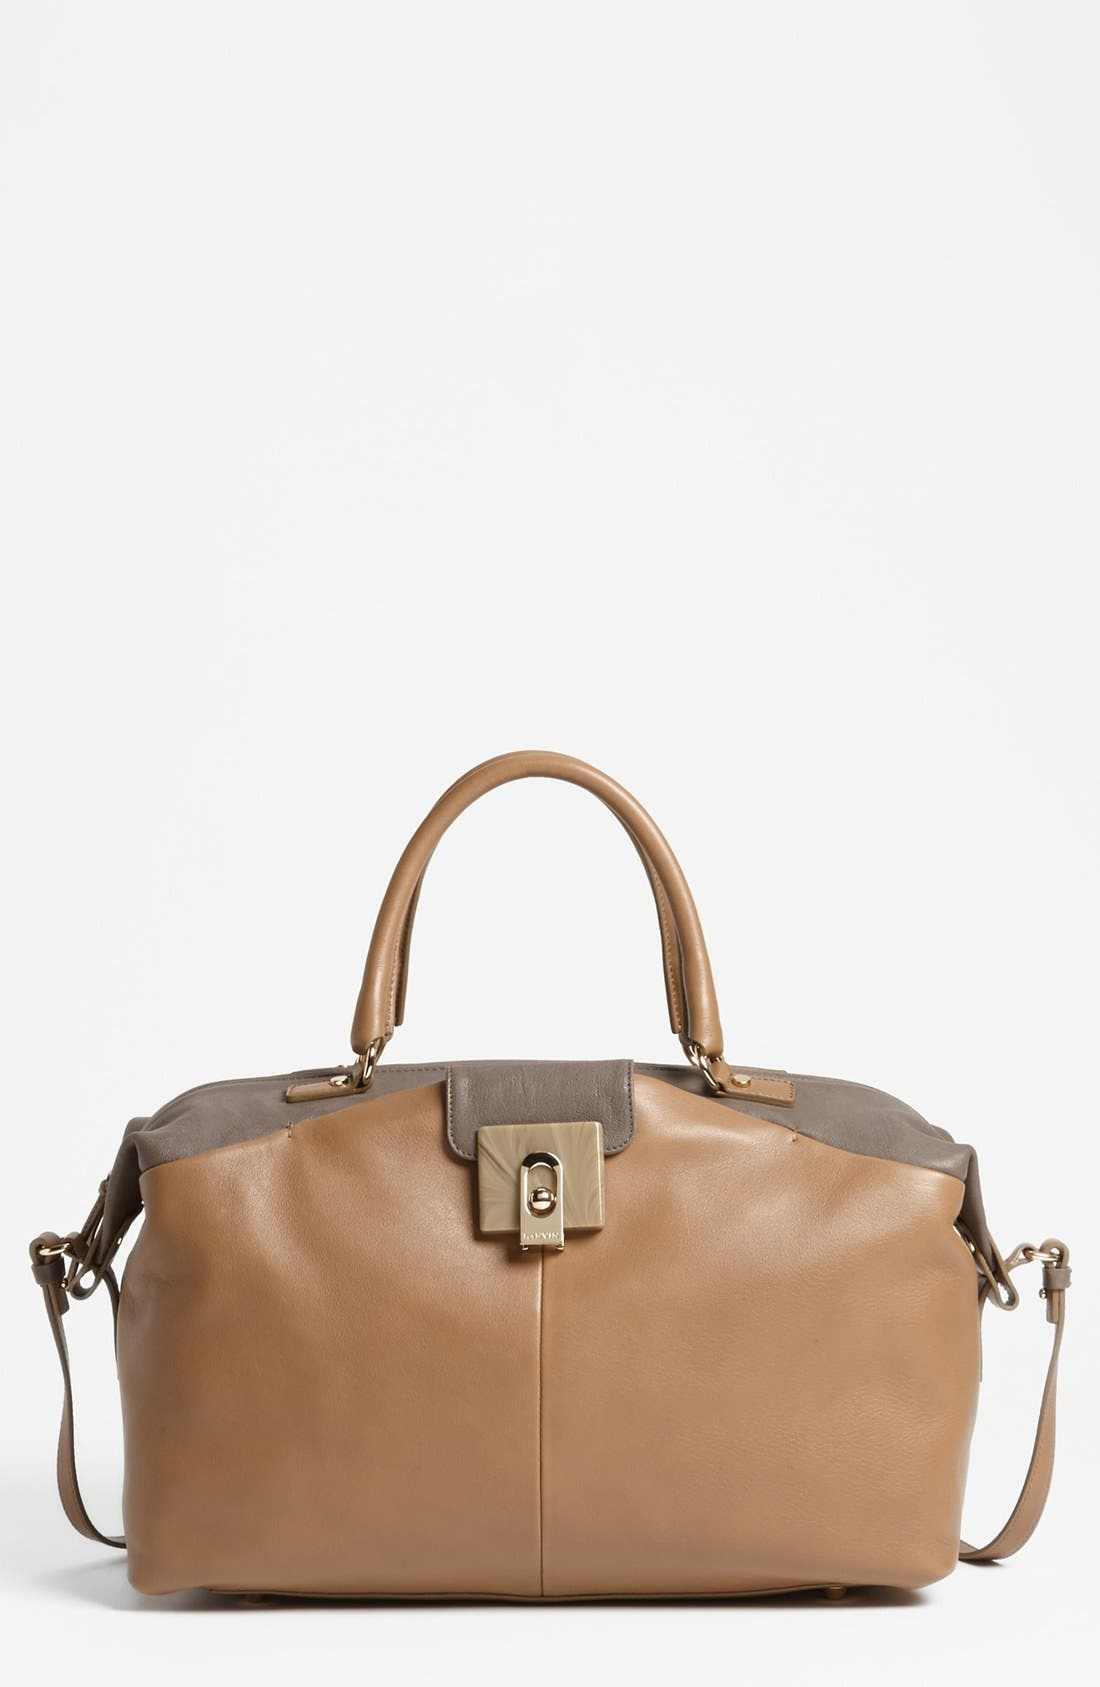 Main Image - Lanvin 'For Me - Large' Leather Tote